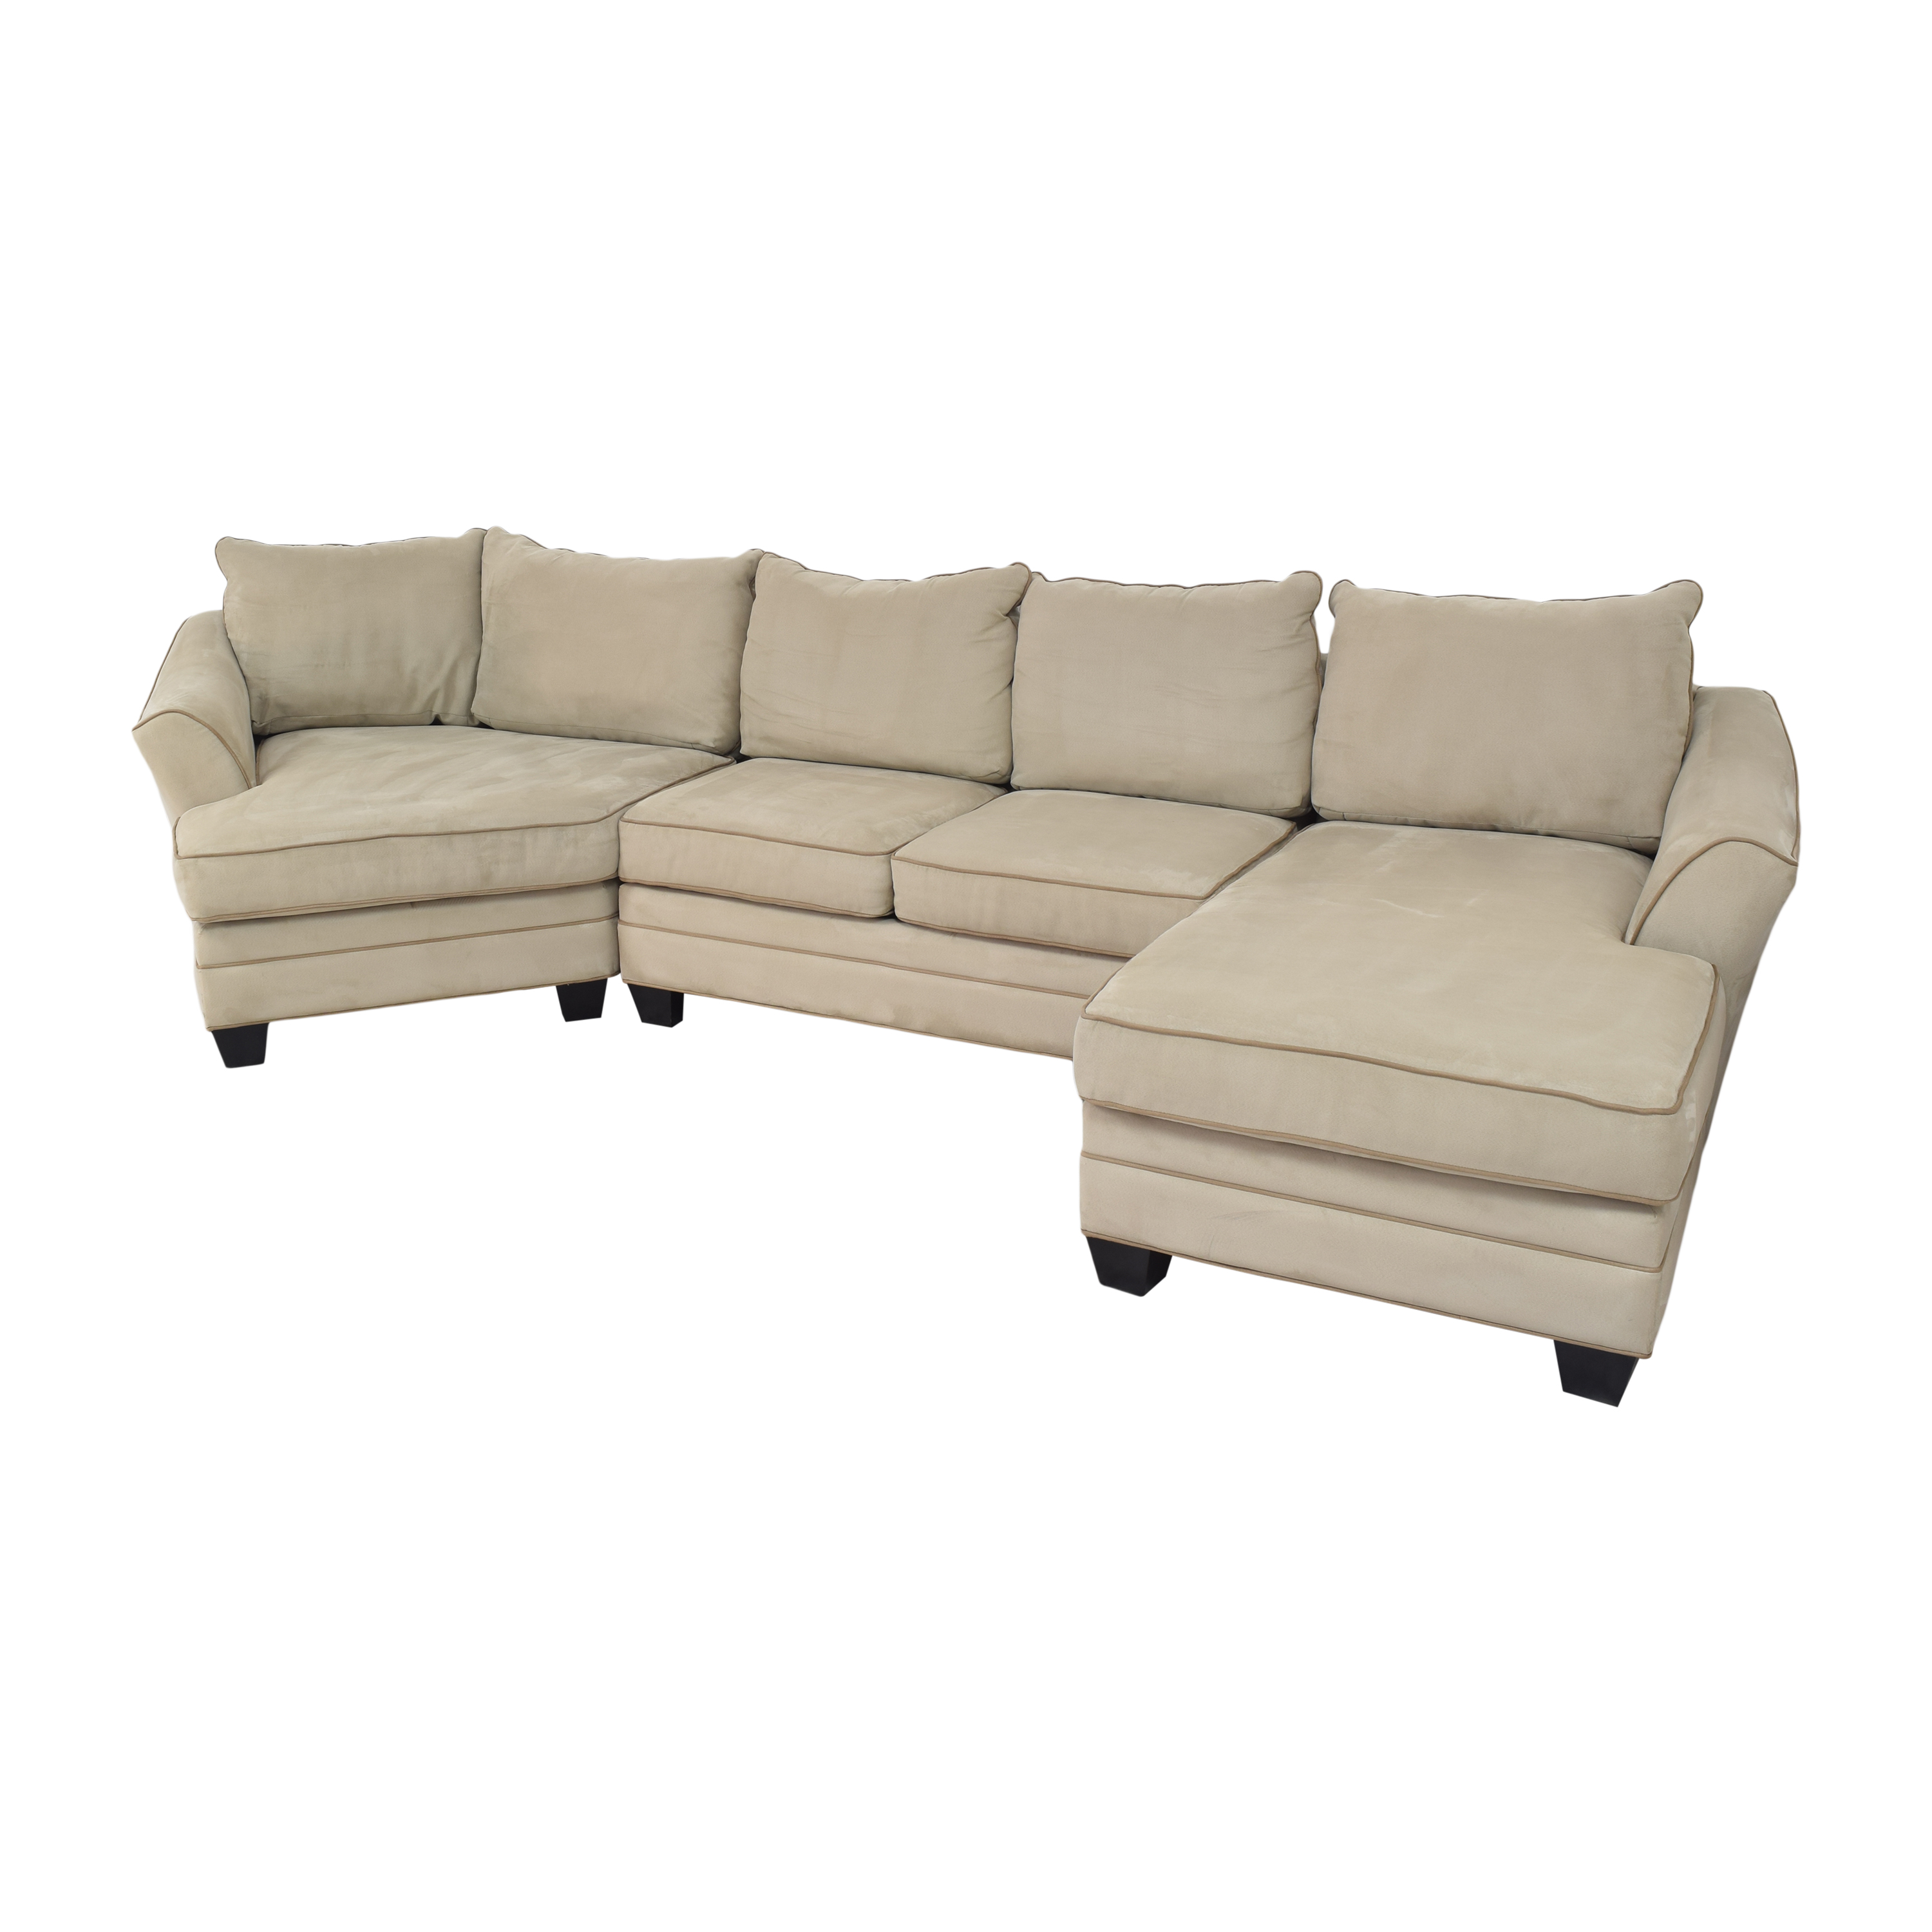 Raymour & Flanigan Raymour & Flanigan Foresthill Sectional Sofa dimensions